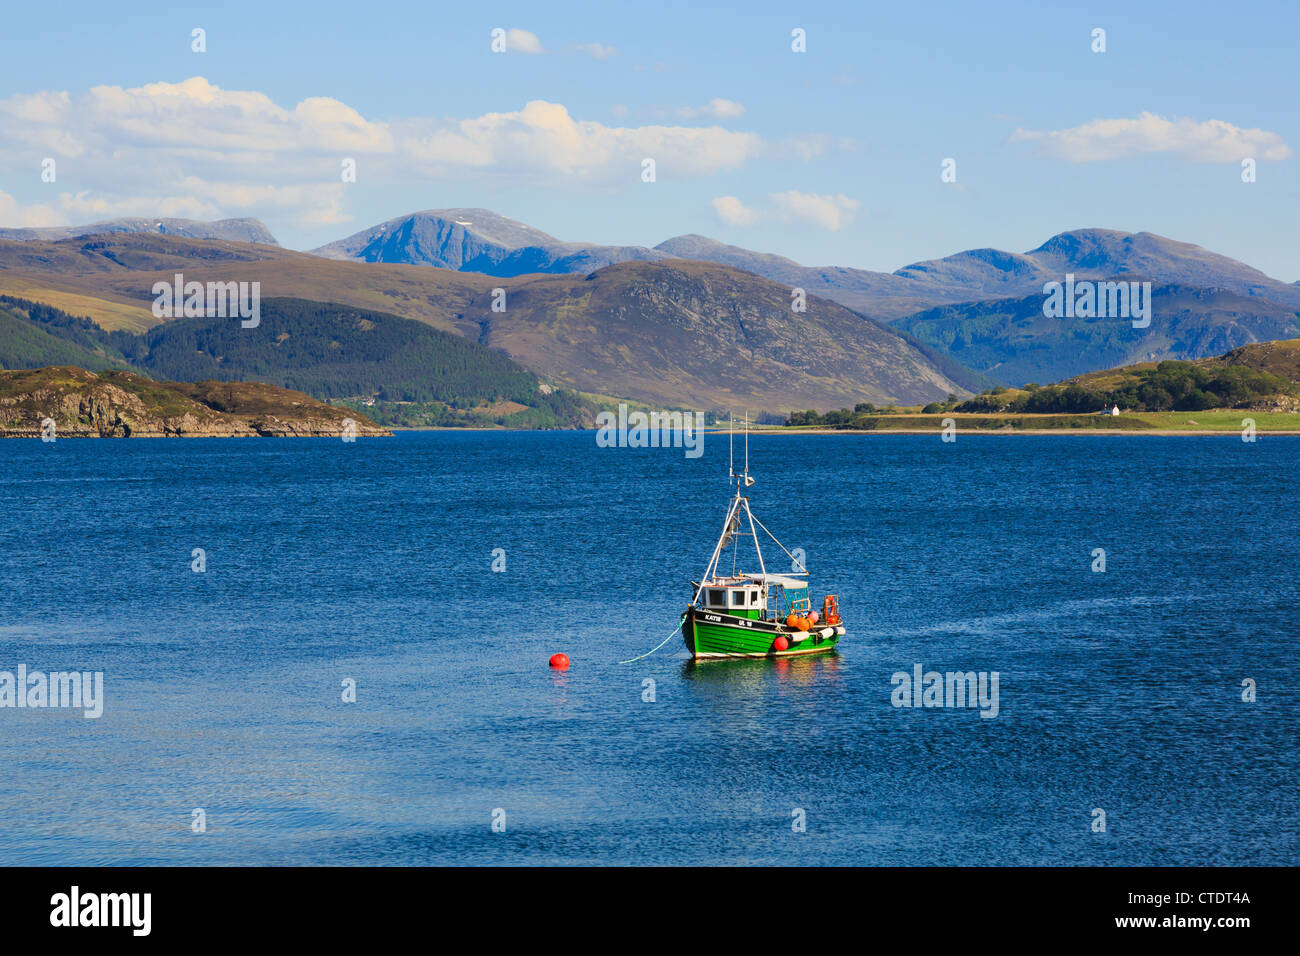 Small fishing boat moored on Loch Broom with stunning view to mountains on north west Scottish highlands coast Ullapool - Stock Image